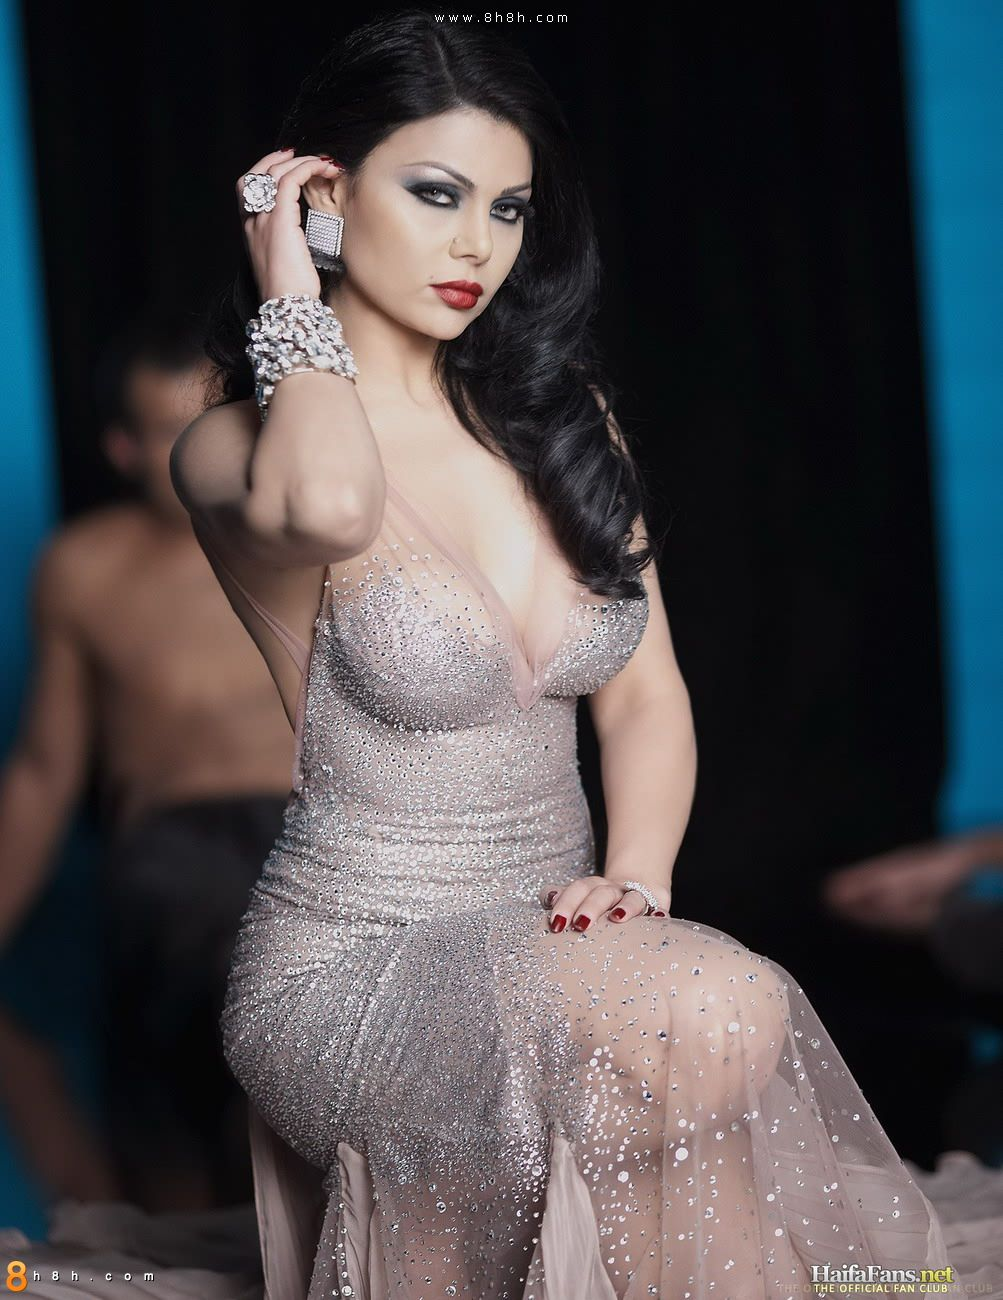 haifa wahby | the hottest arab celebs | pinterest | haifa, haifa